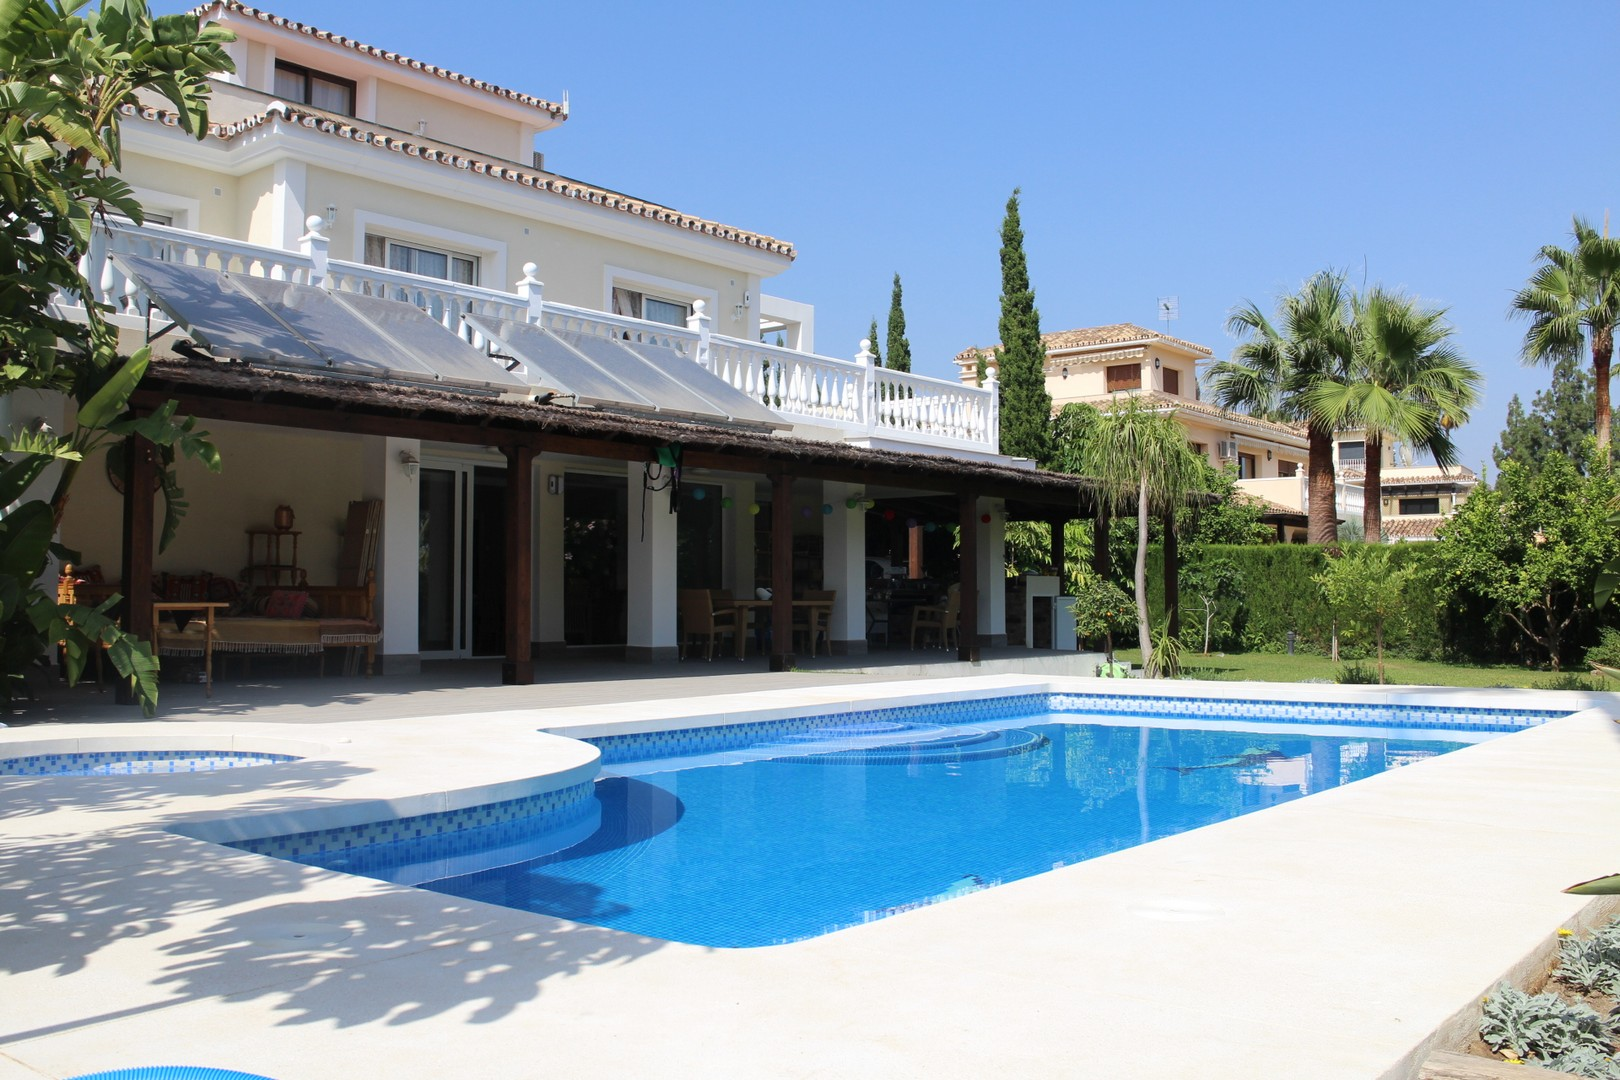 AH2367 - Spacious 5 bedroom villa with Panoramic Views of Sea in Marbella Area